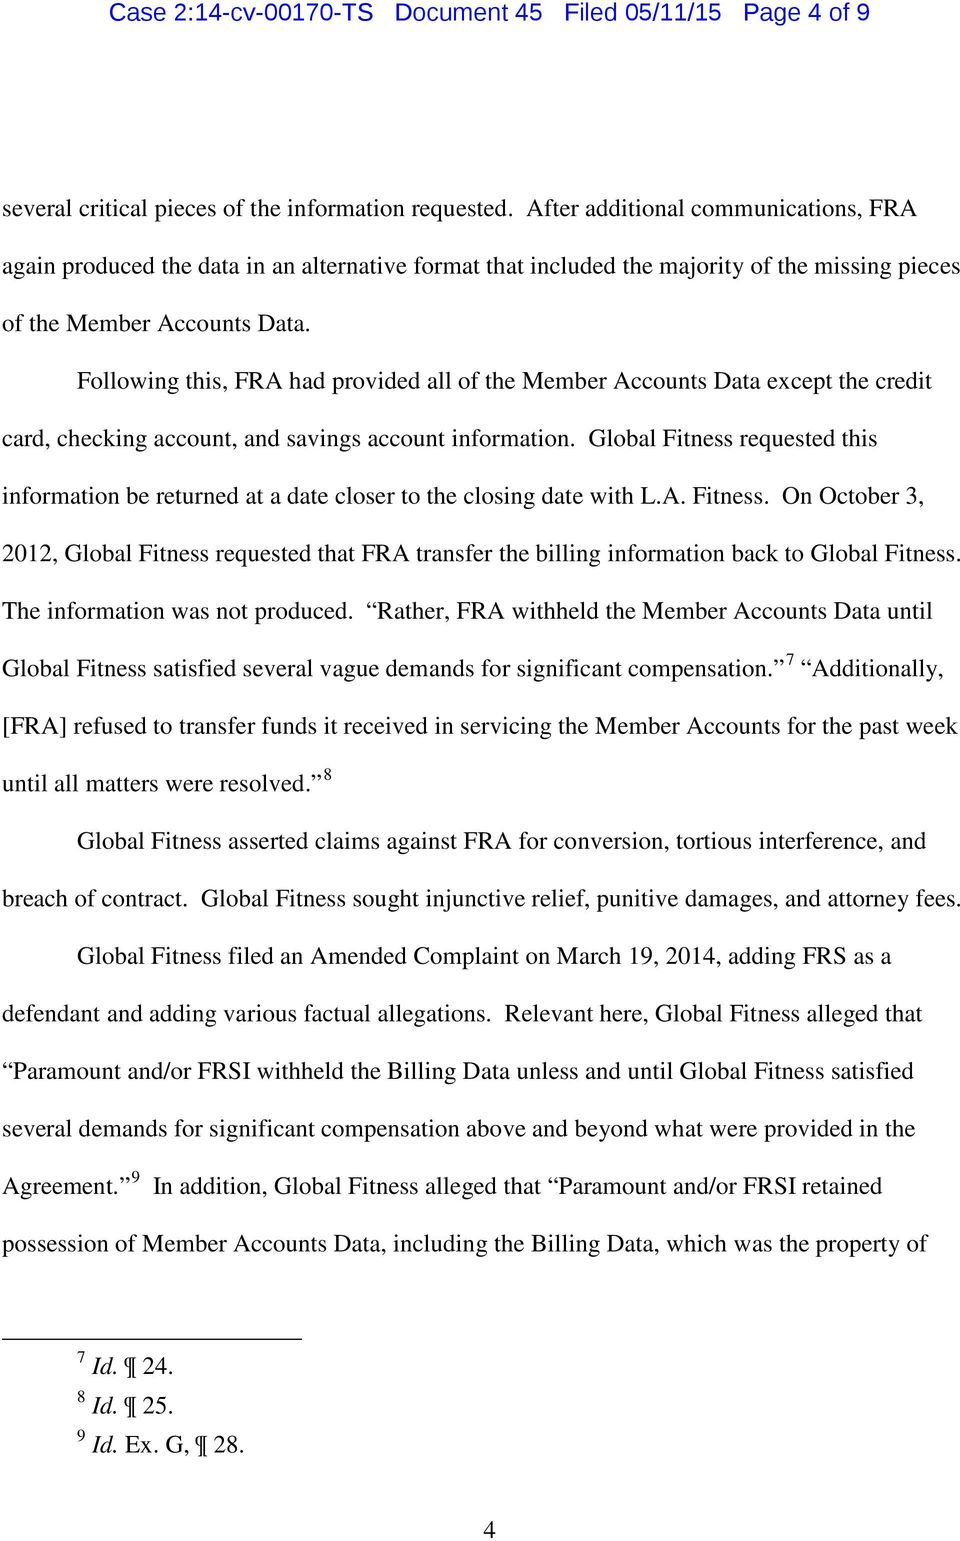 Following this, FRA had provided all of the Member Accounts Data except the credit card, checking account, and savings account information.